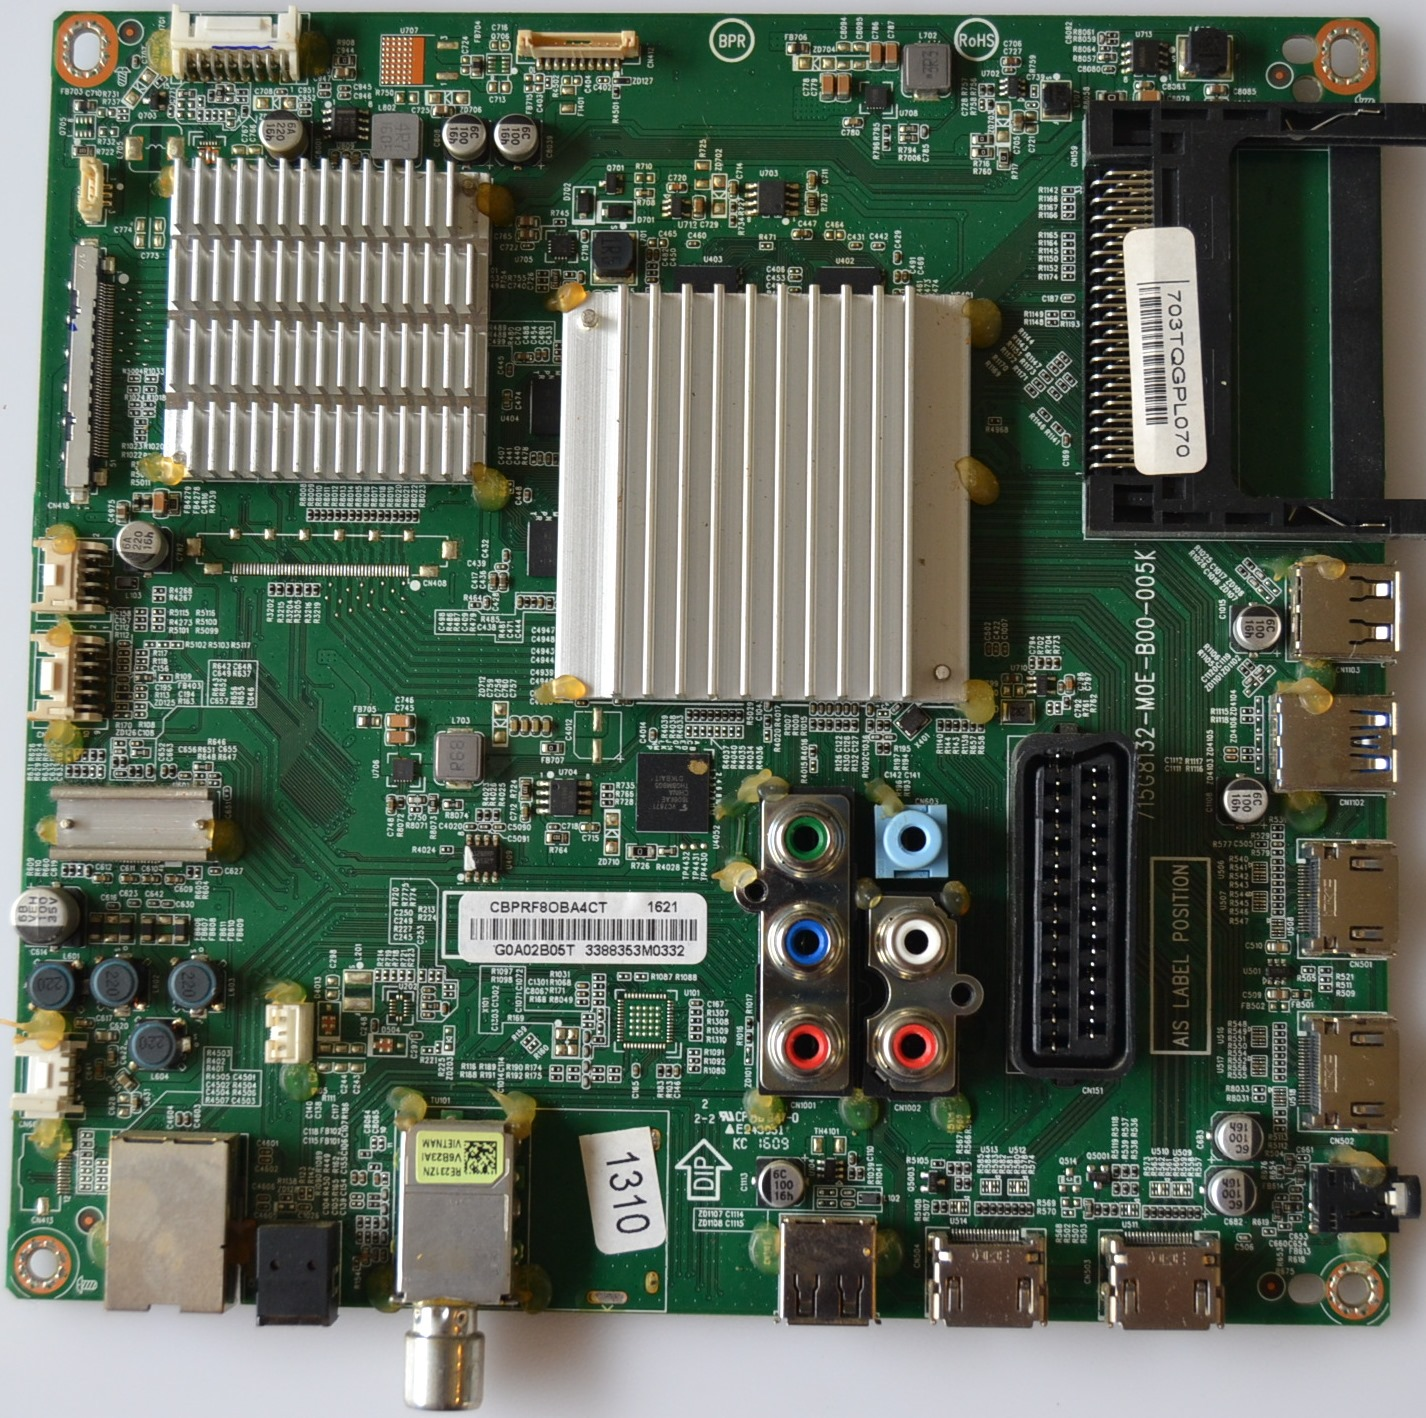 MB/55INC/PH/55PUH6101 MAIN BOARD ,715G8132-M0E-B00-005K, for PHILIPS 55PUH6101/88 UHD 4K